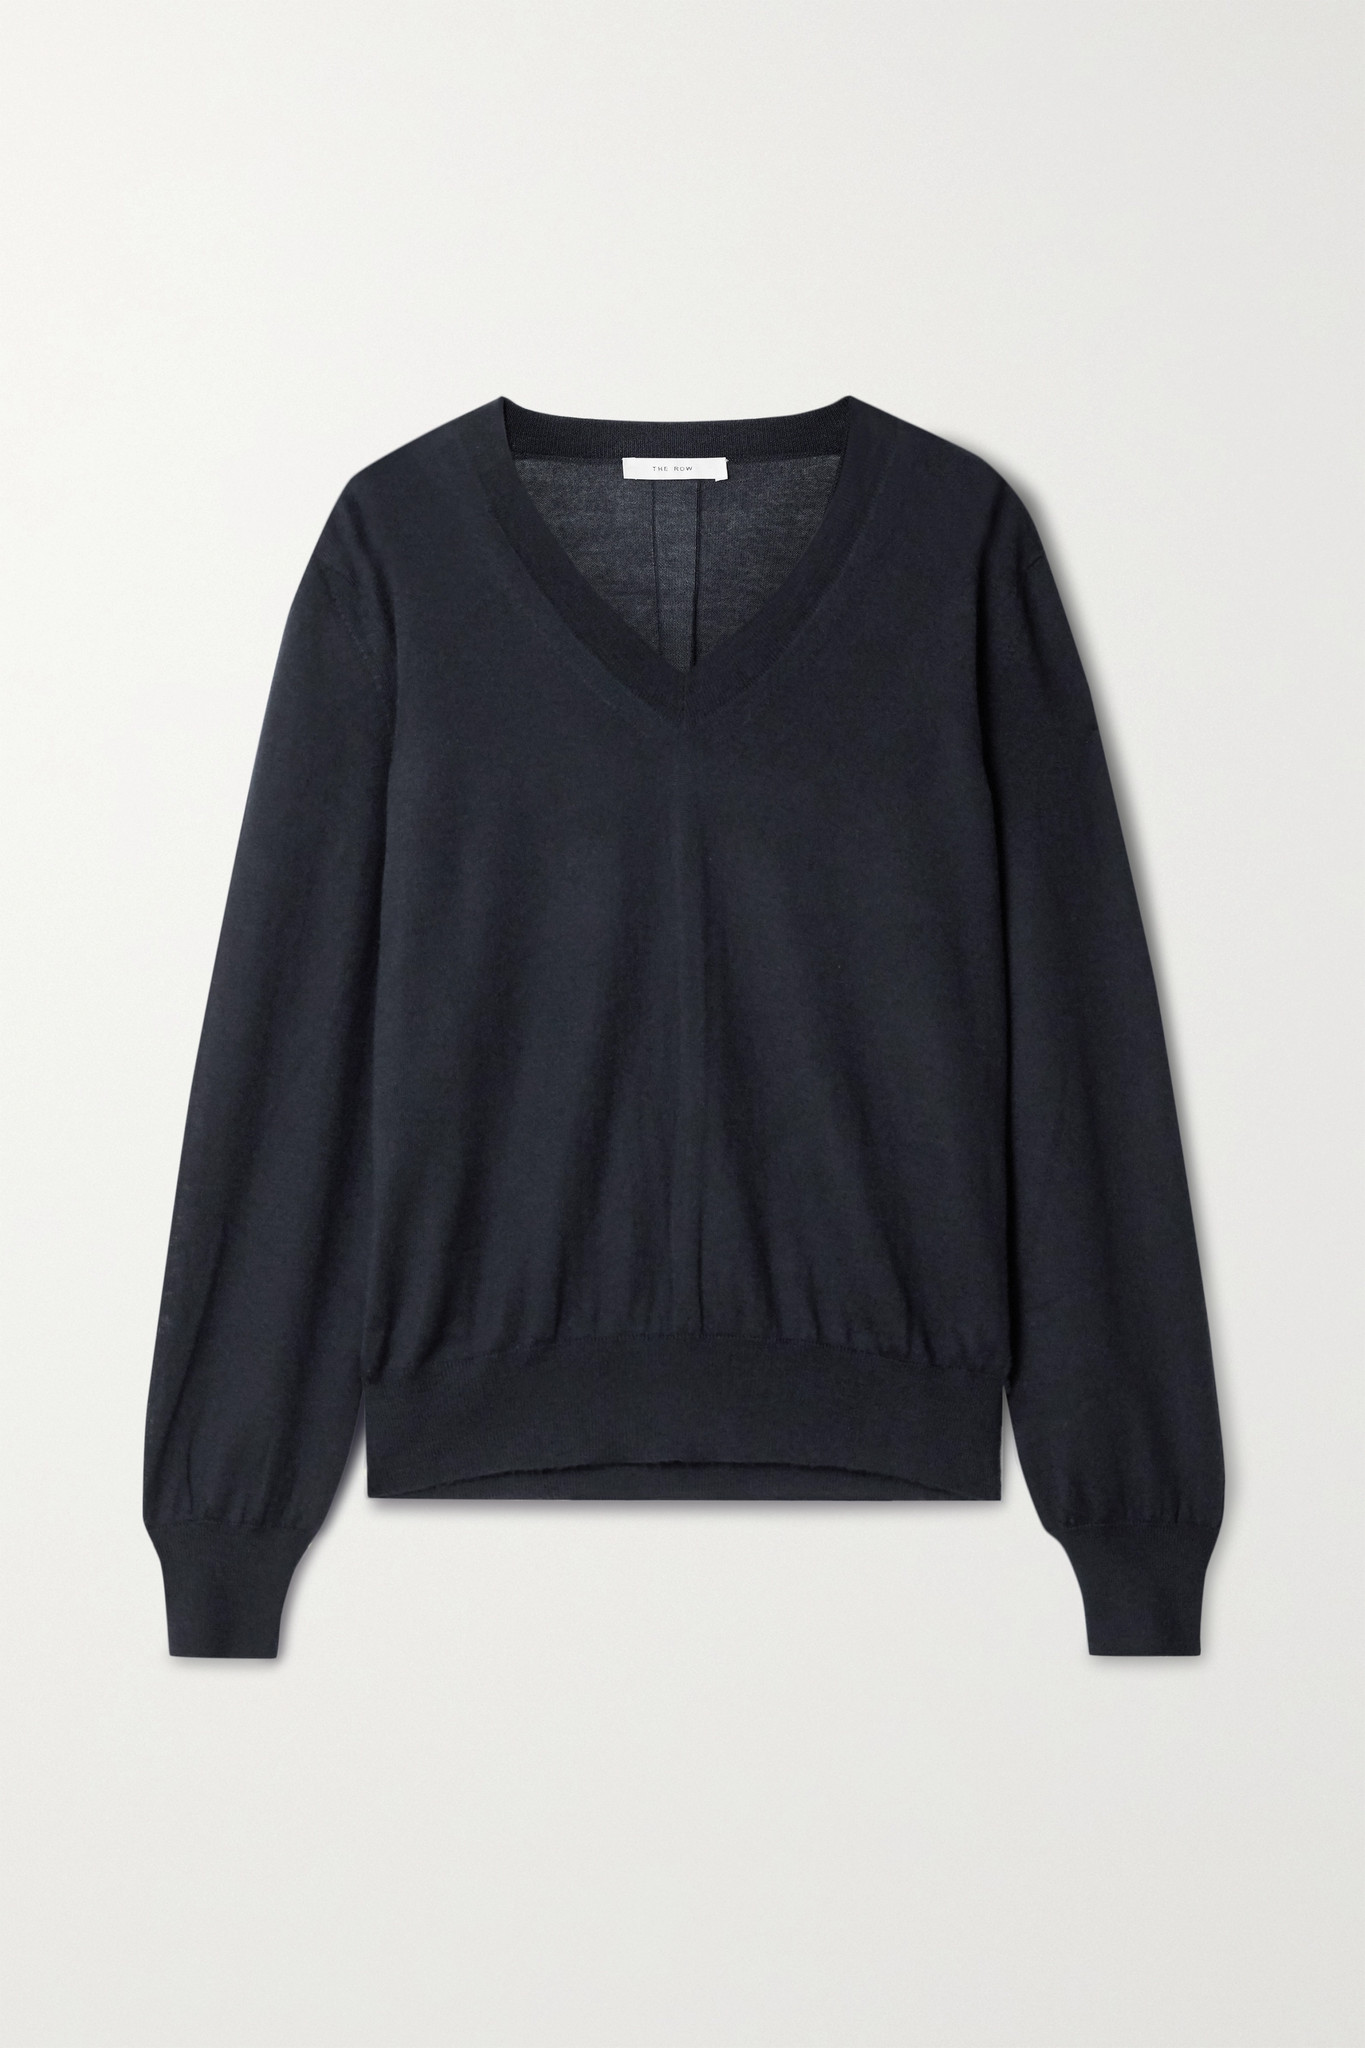 THE ROW - Stockwell Cashmere Sweater - Blue - small